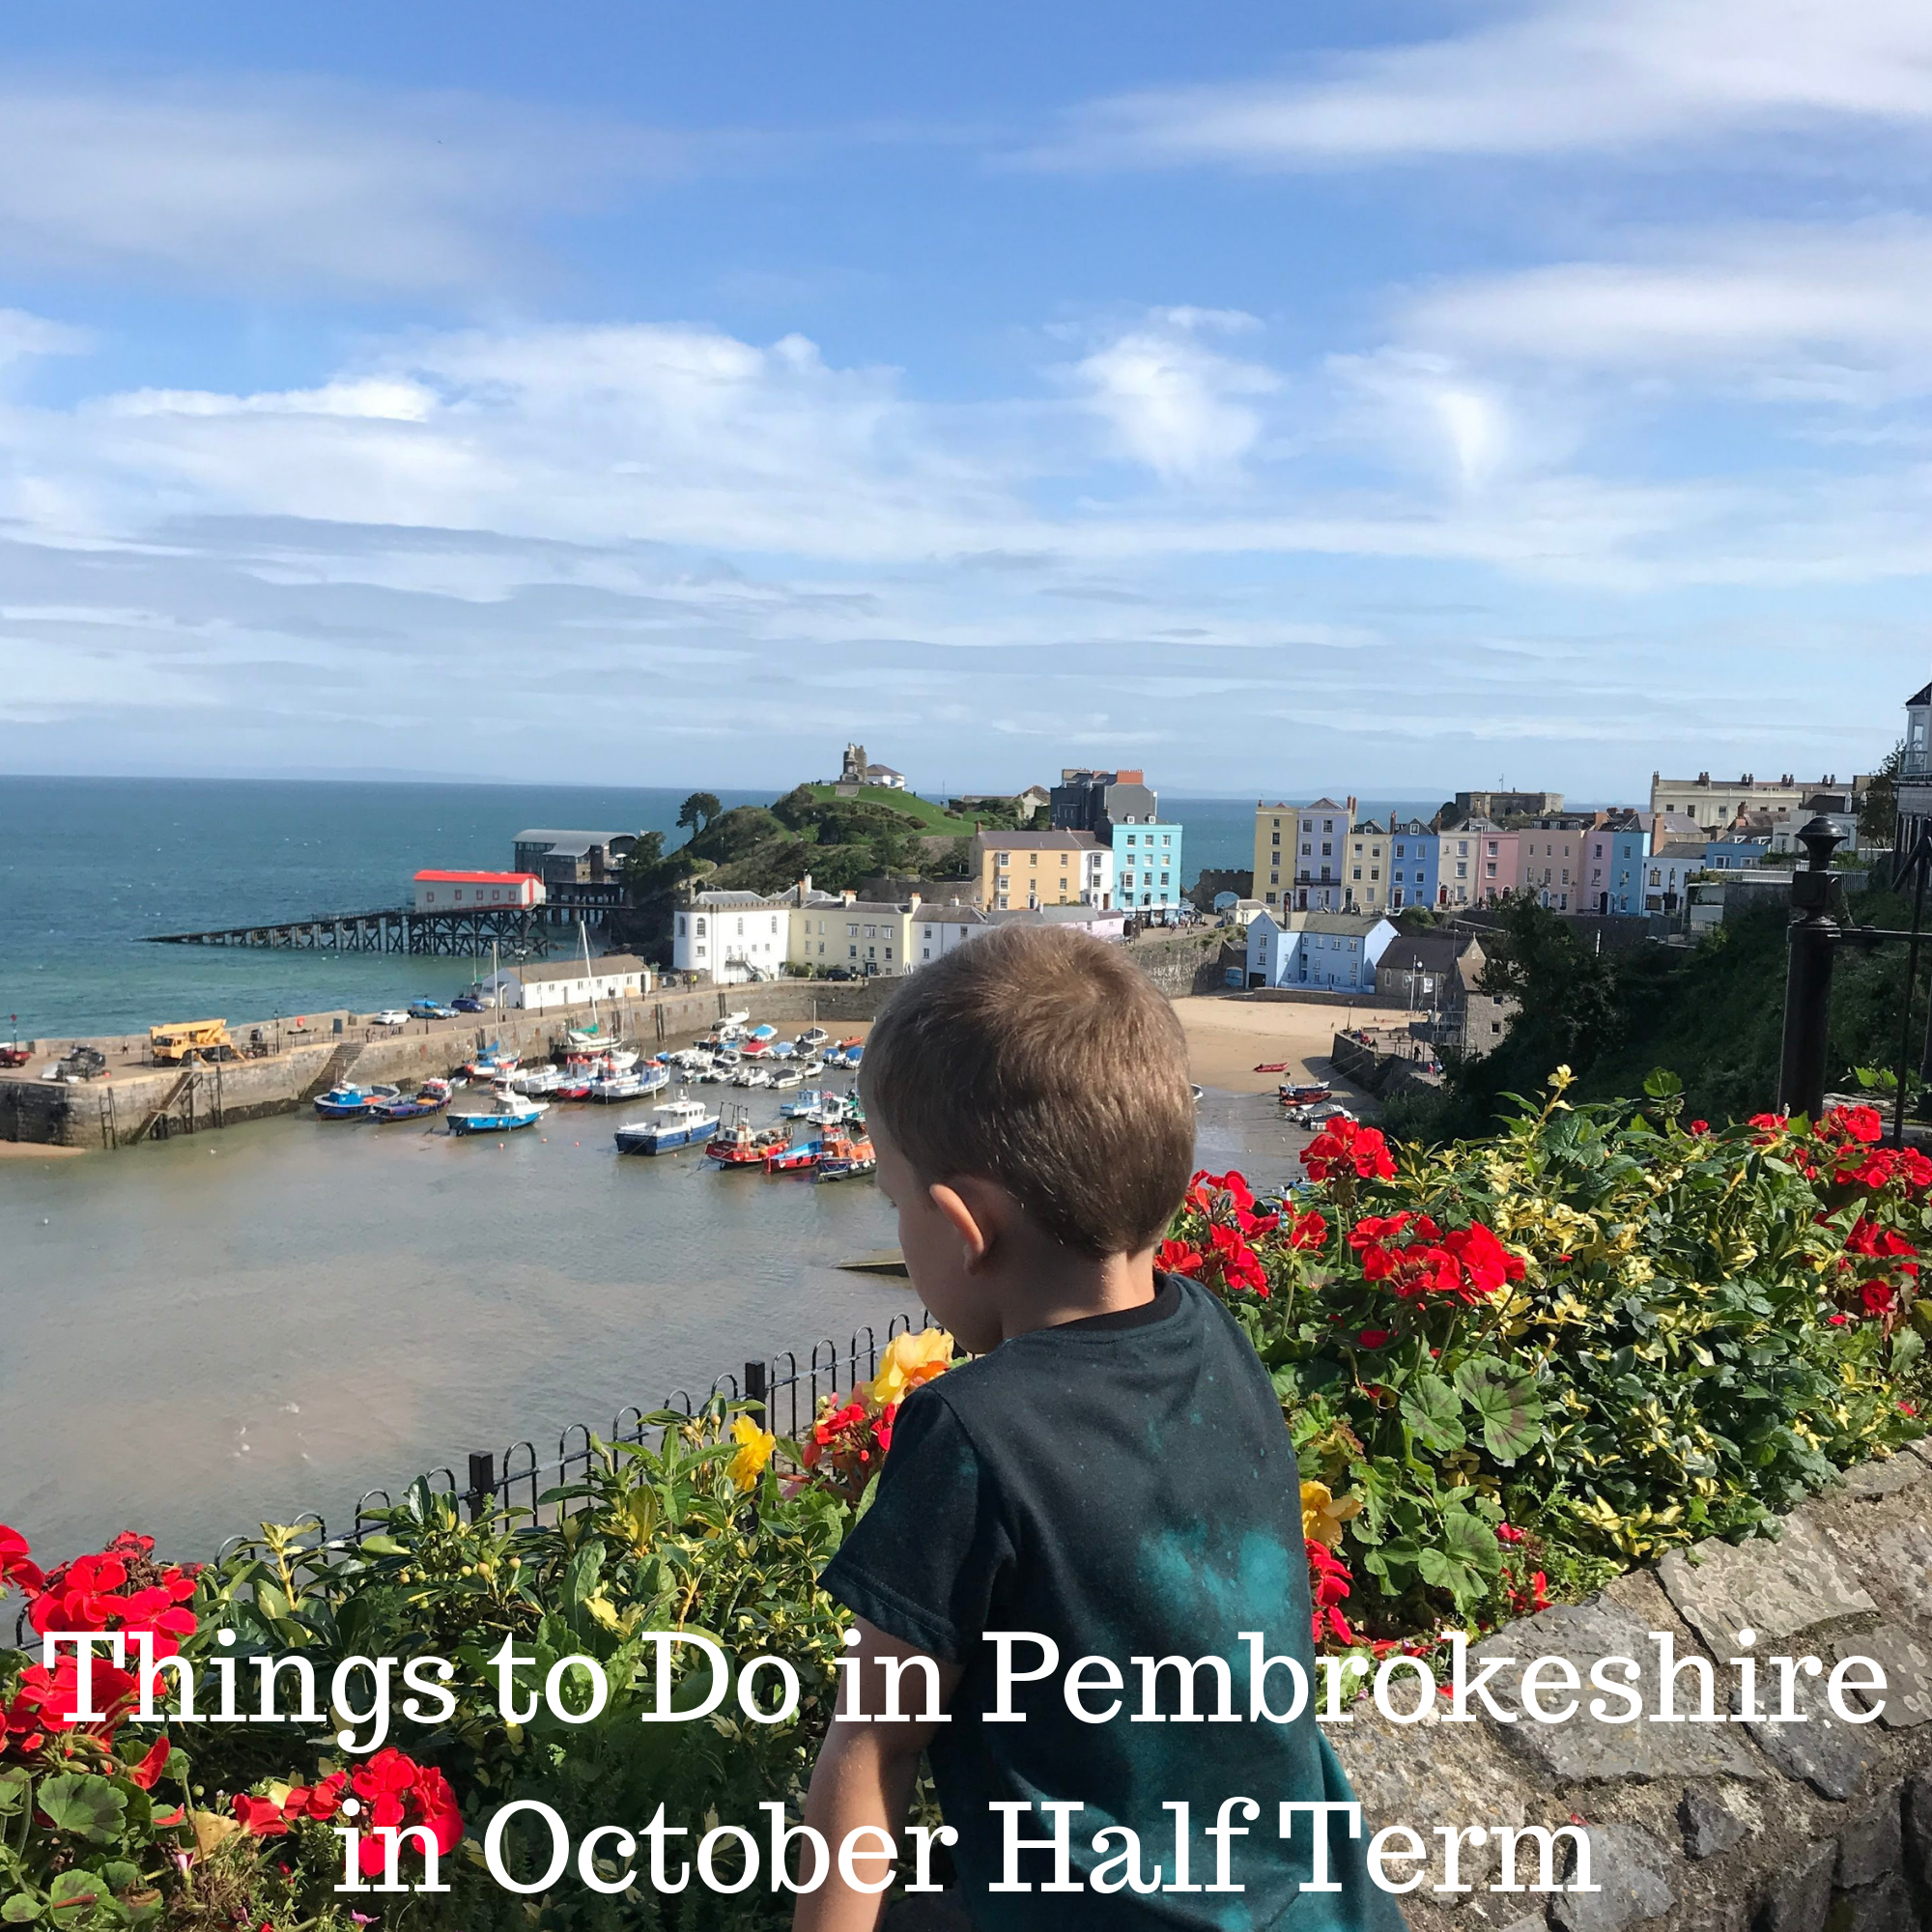 What's on in Pembrokeshire for October Half Term